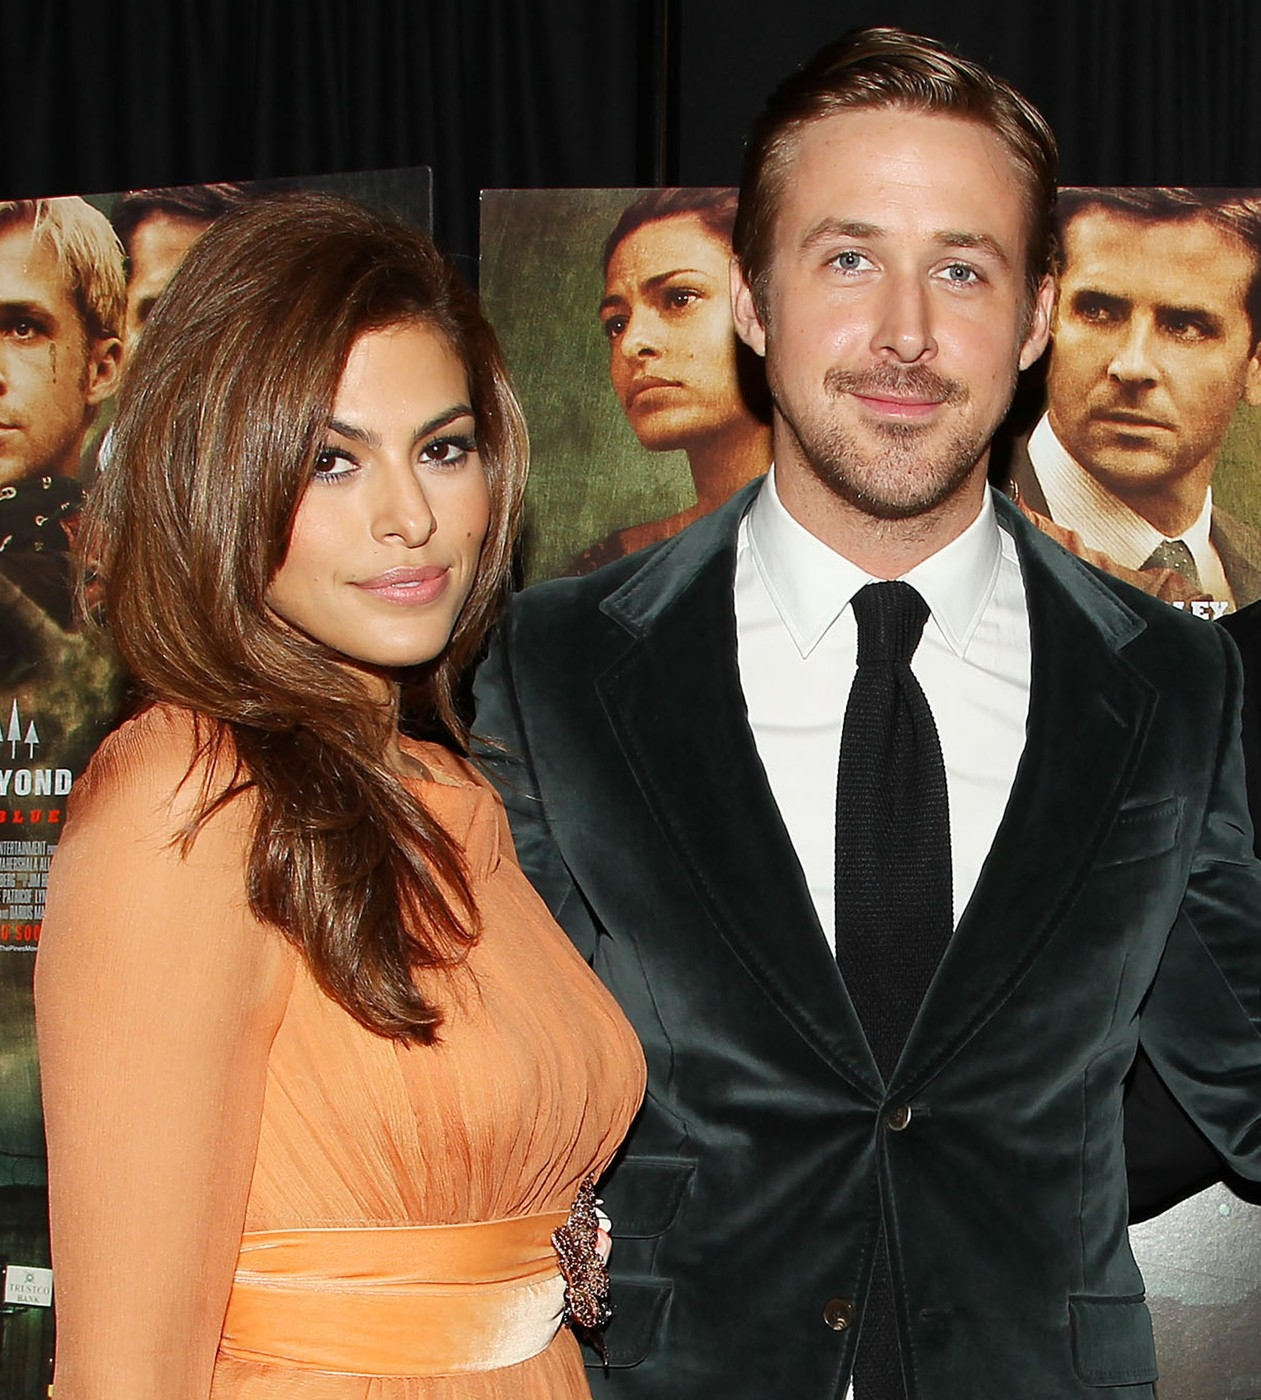 Eva Mendes and Ryan Gosling at The Place Behind The Pines Premiere